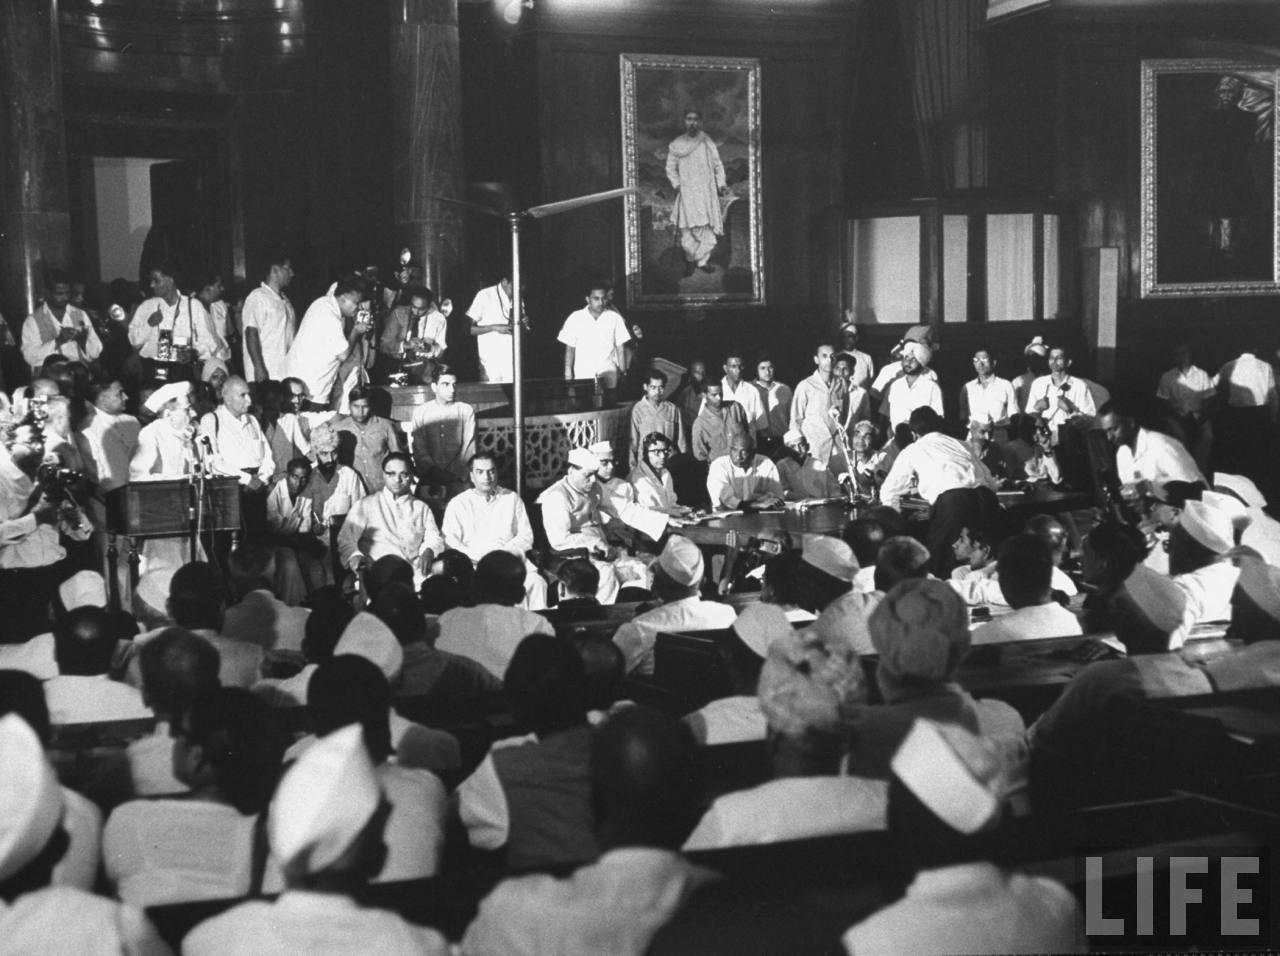 A meeting in New Delhi by party leaders to chose new Prime Minister - June 1964